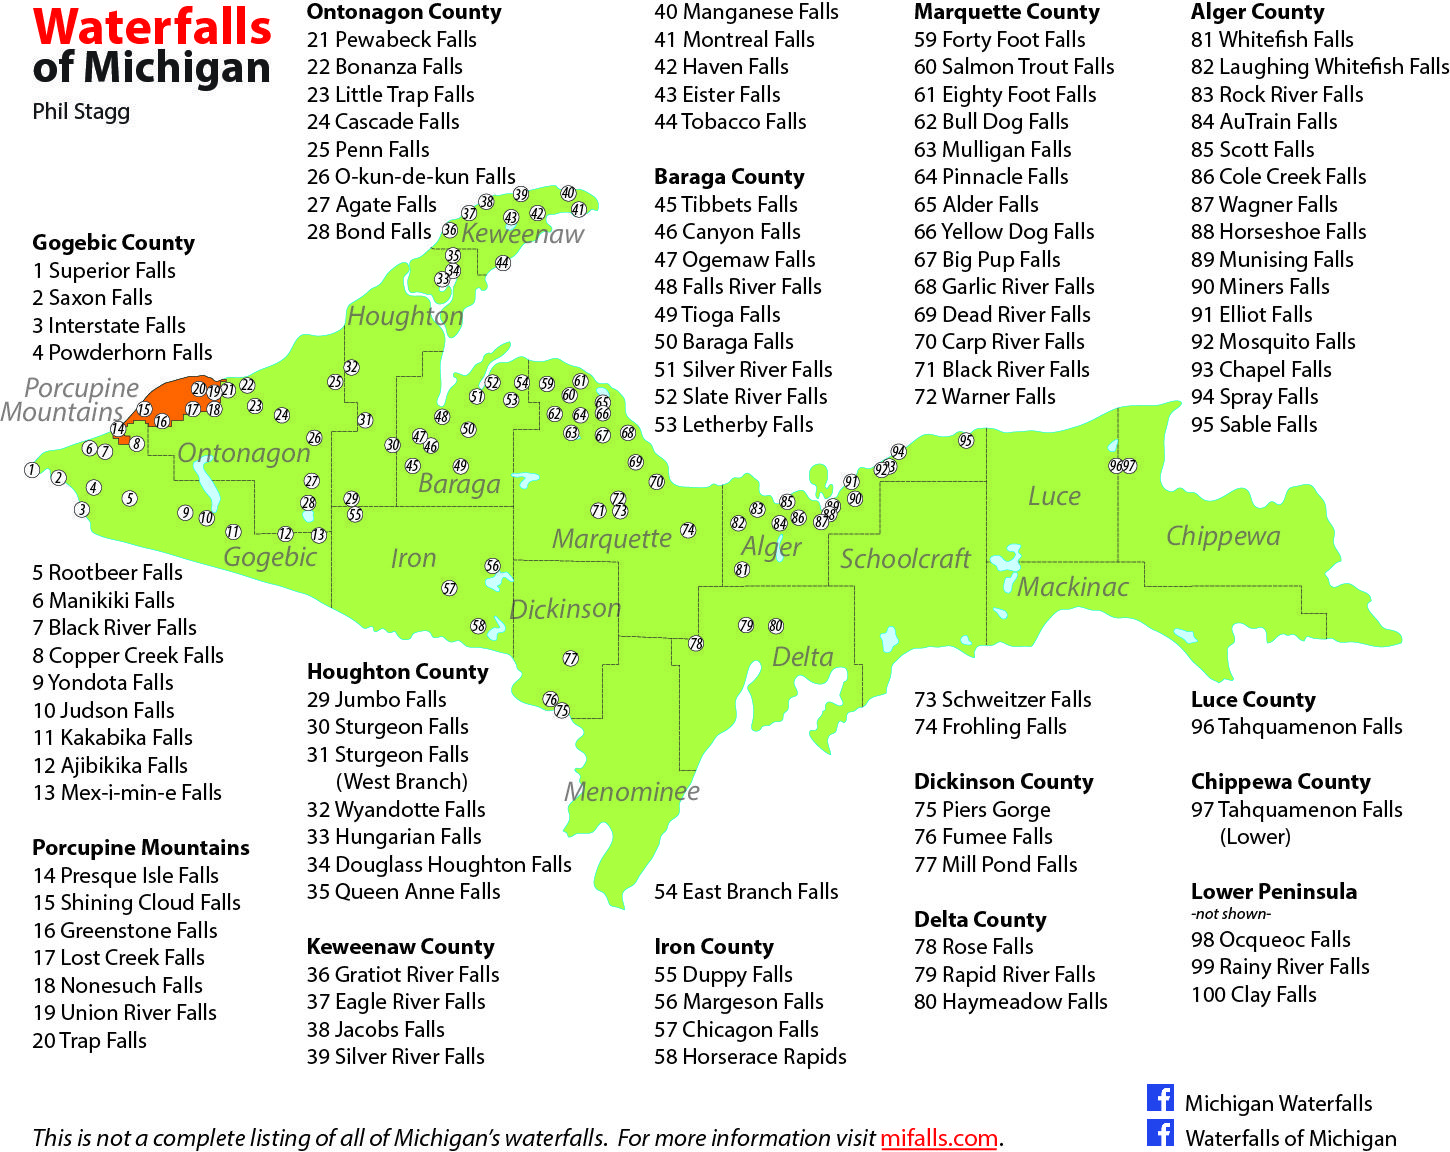 Michigan alger county munising - This Is A Map Of Michigan S Waterfalls It Shows 100 Areas In Which Most Of